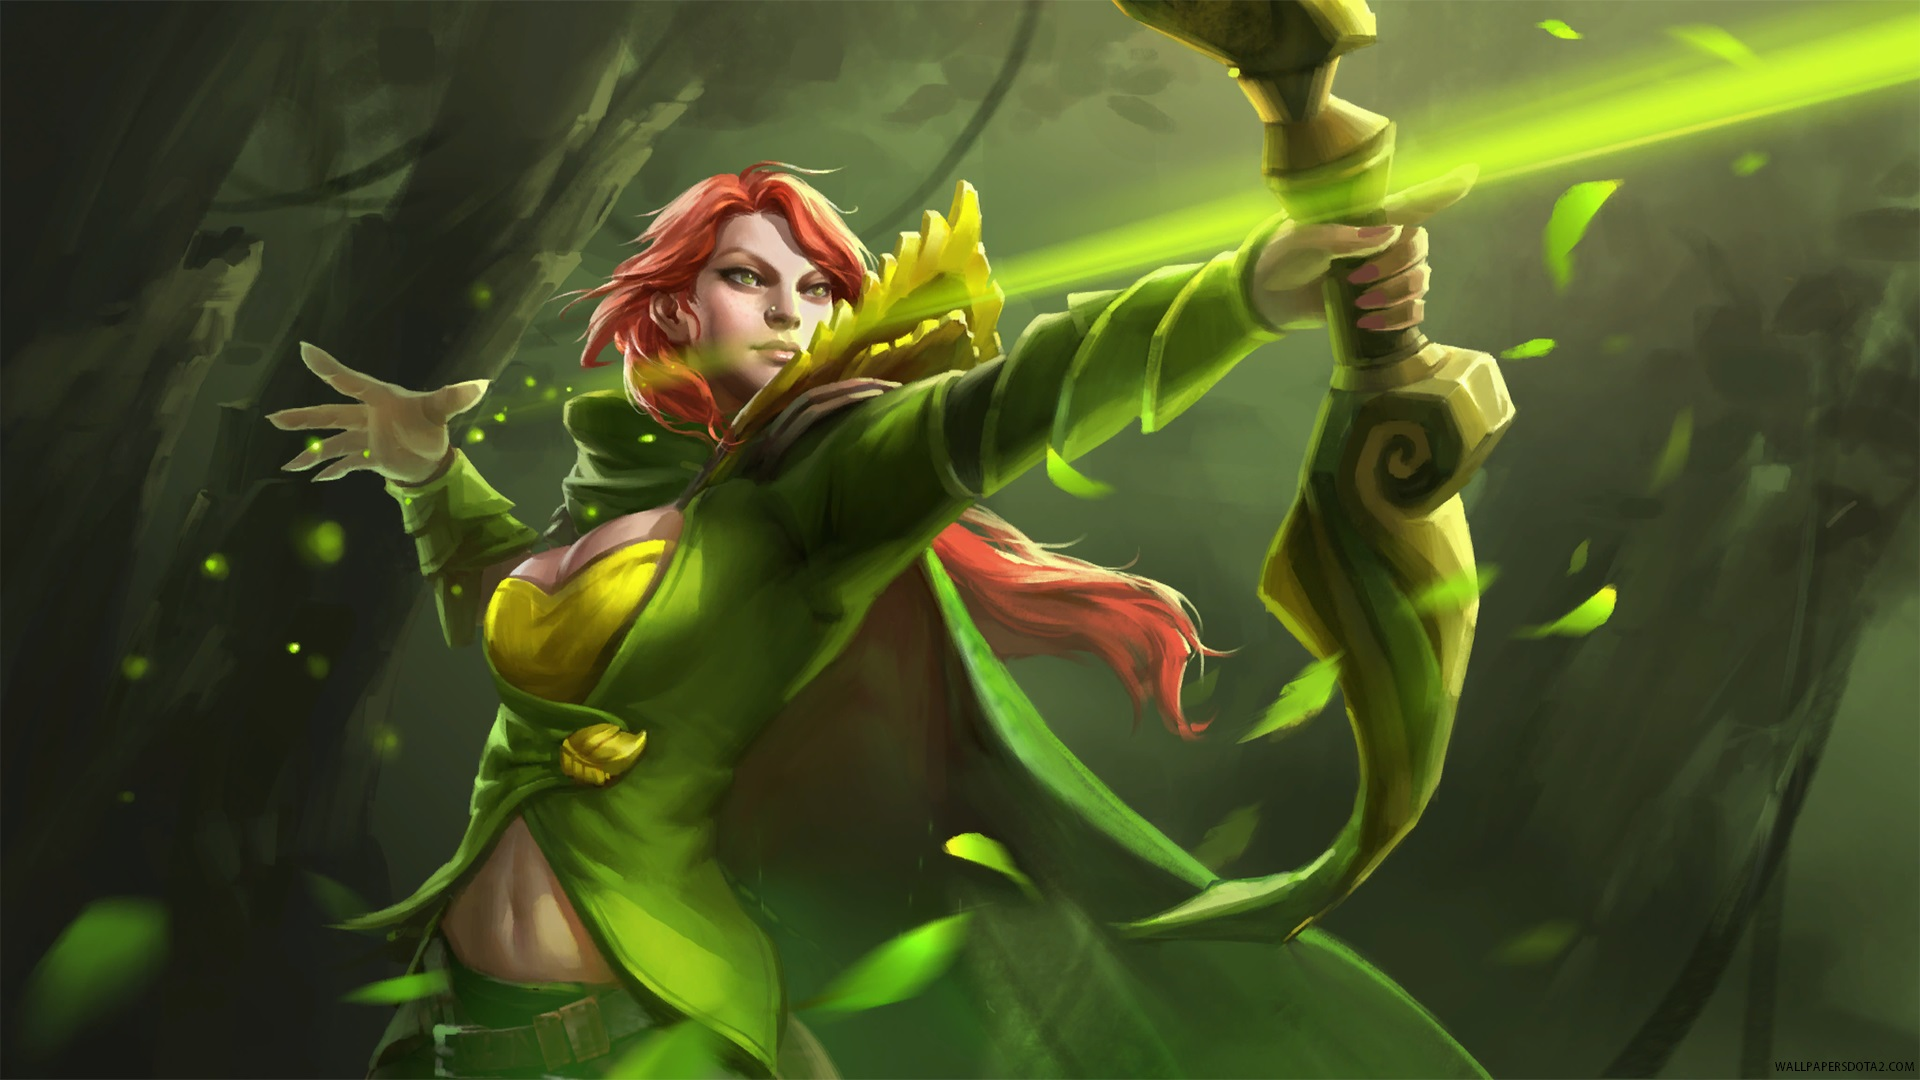 Windranger Dota 2 hd wallpapers for computer desktop